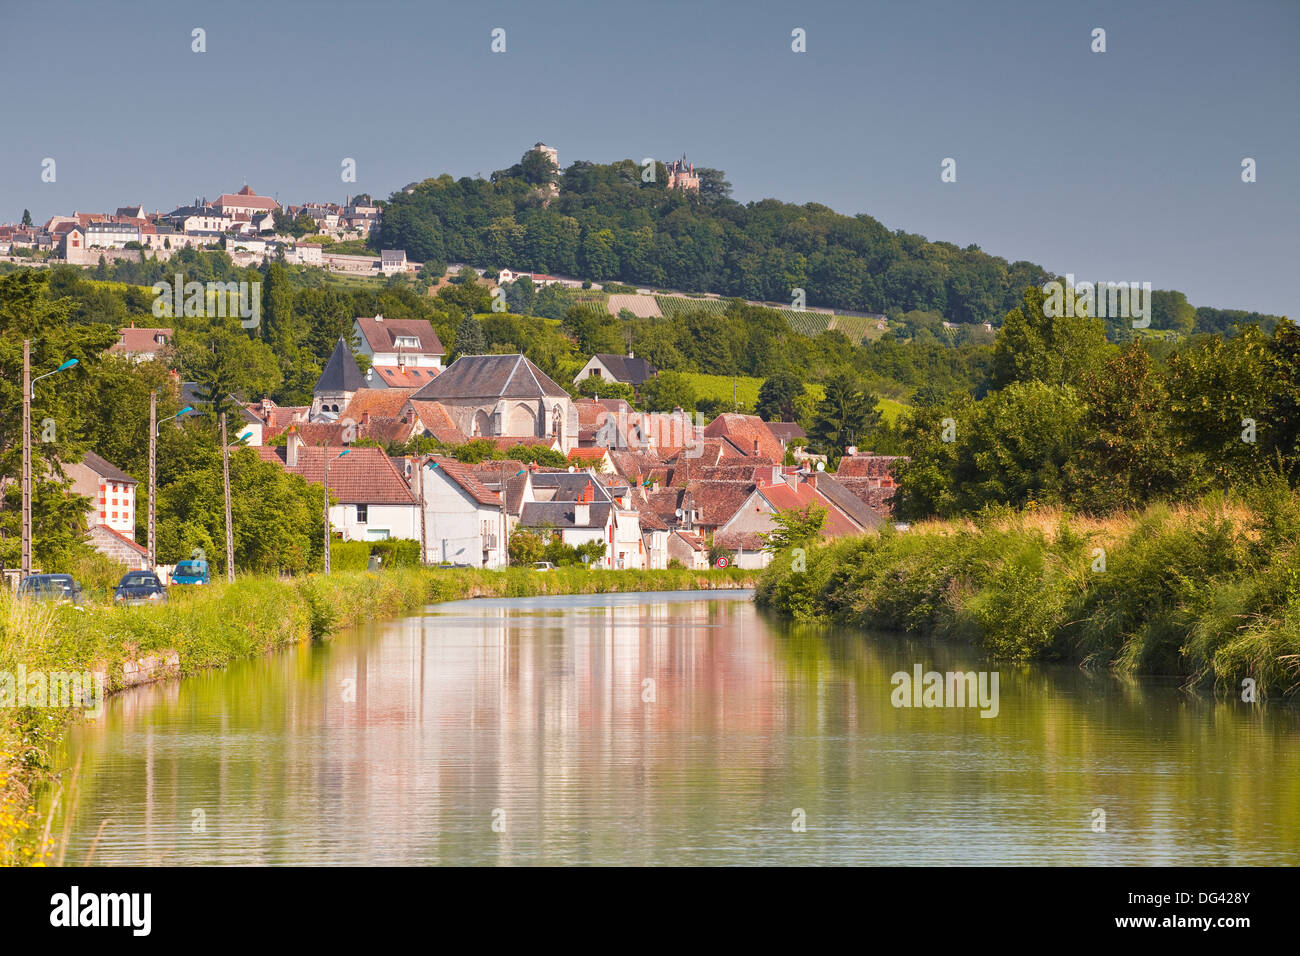 The canal Lateral a La Loire, the village of Menetreol sous Sancerre, the village of Sancerre on the hill, Cher, Centre, France - Stock Image